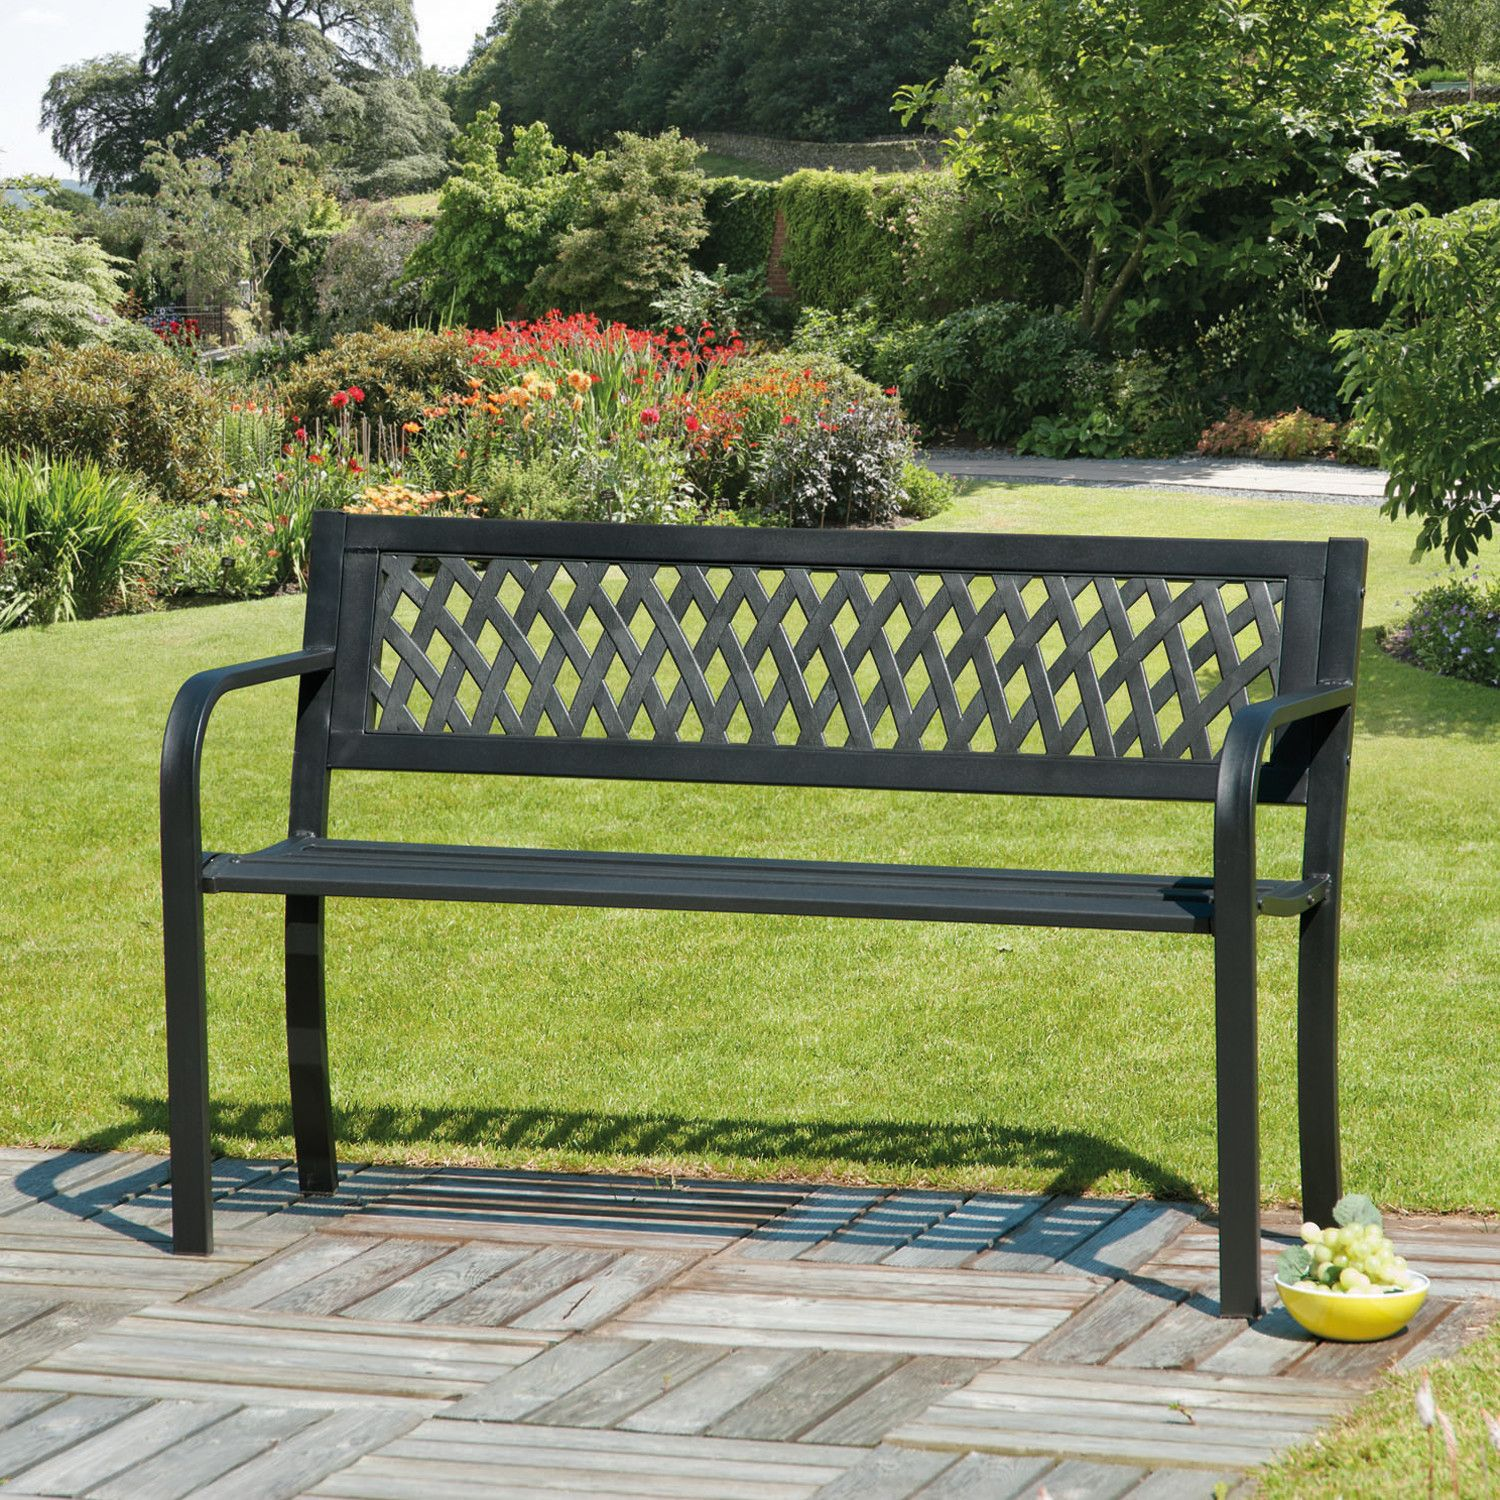 SunTime Outdoor Living Steel/Plastic Garden Bench | New house ...